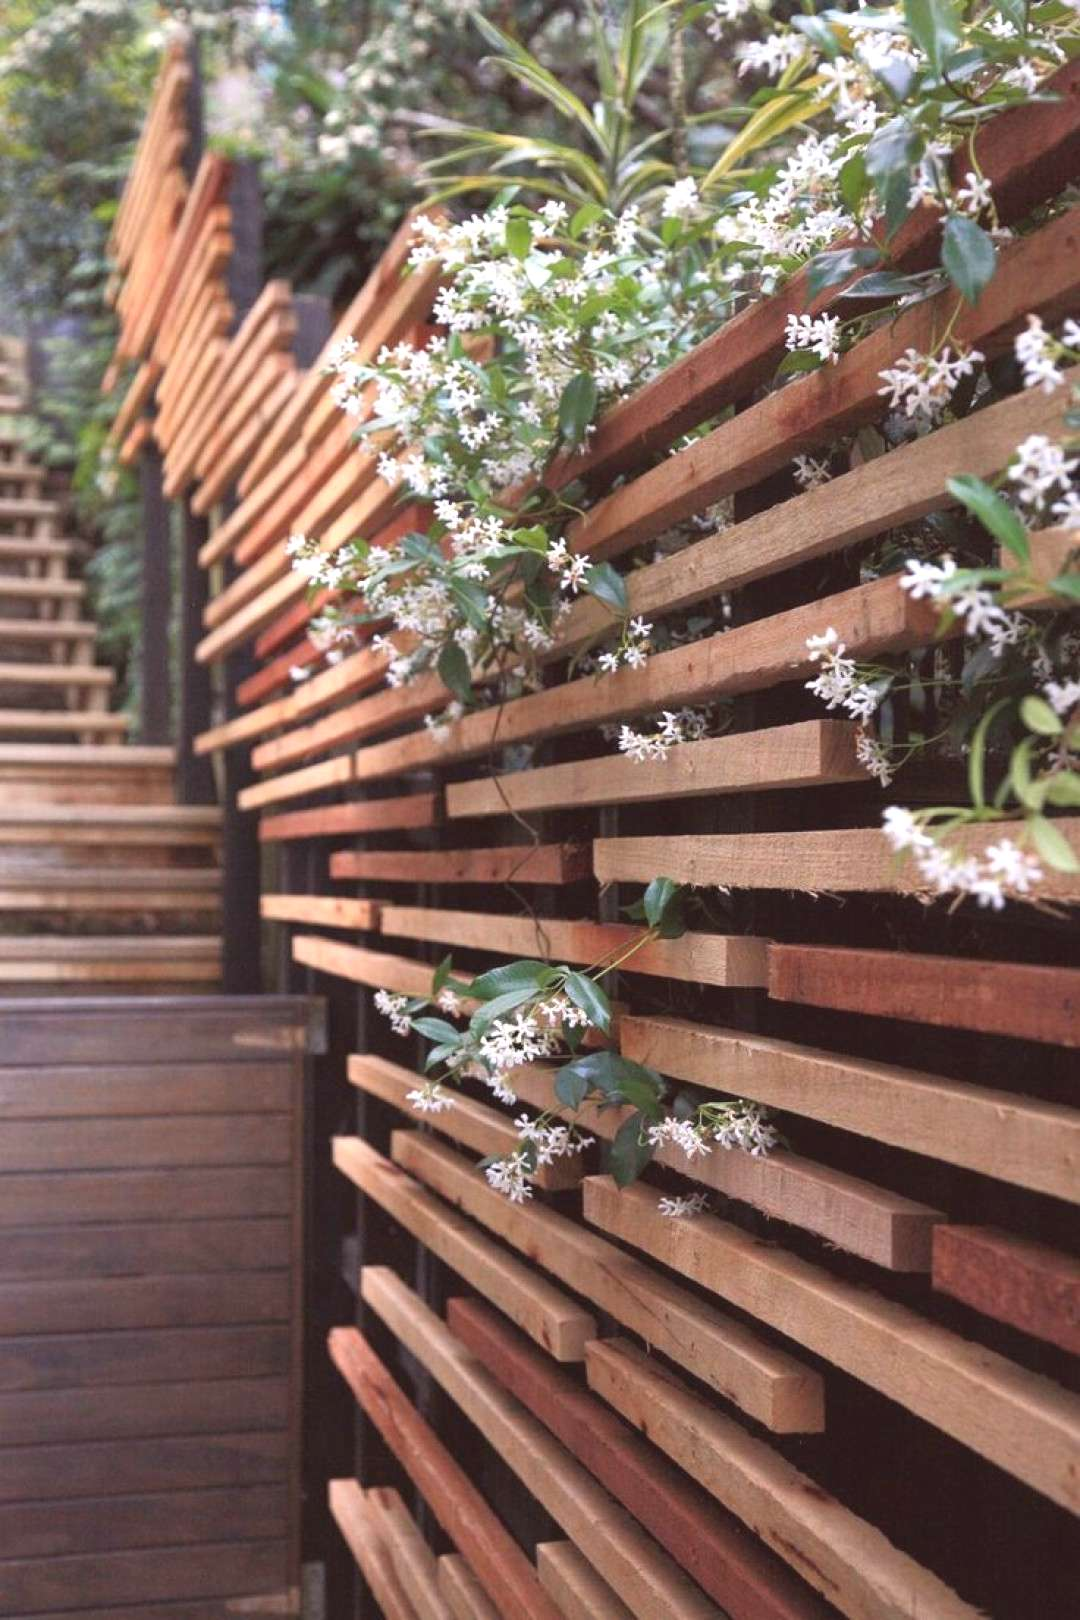 Terrific Screen Retaining Walls diy Thoughts Terrific Screen Retaining Walls diy Thoughts When you'